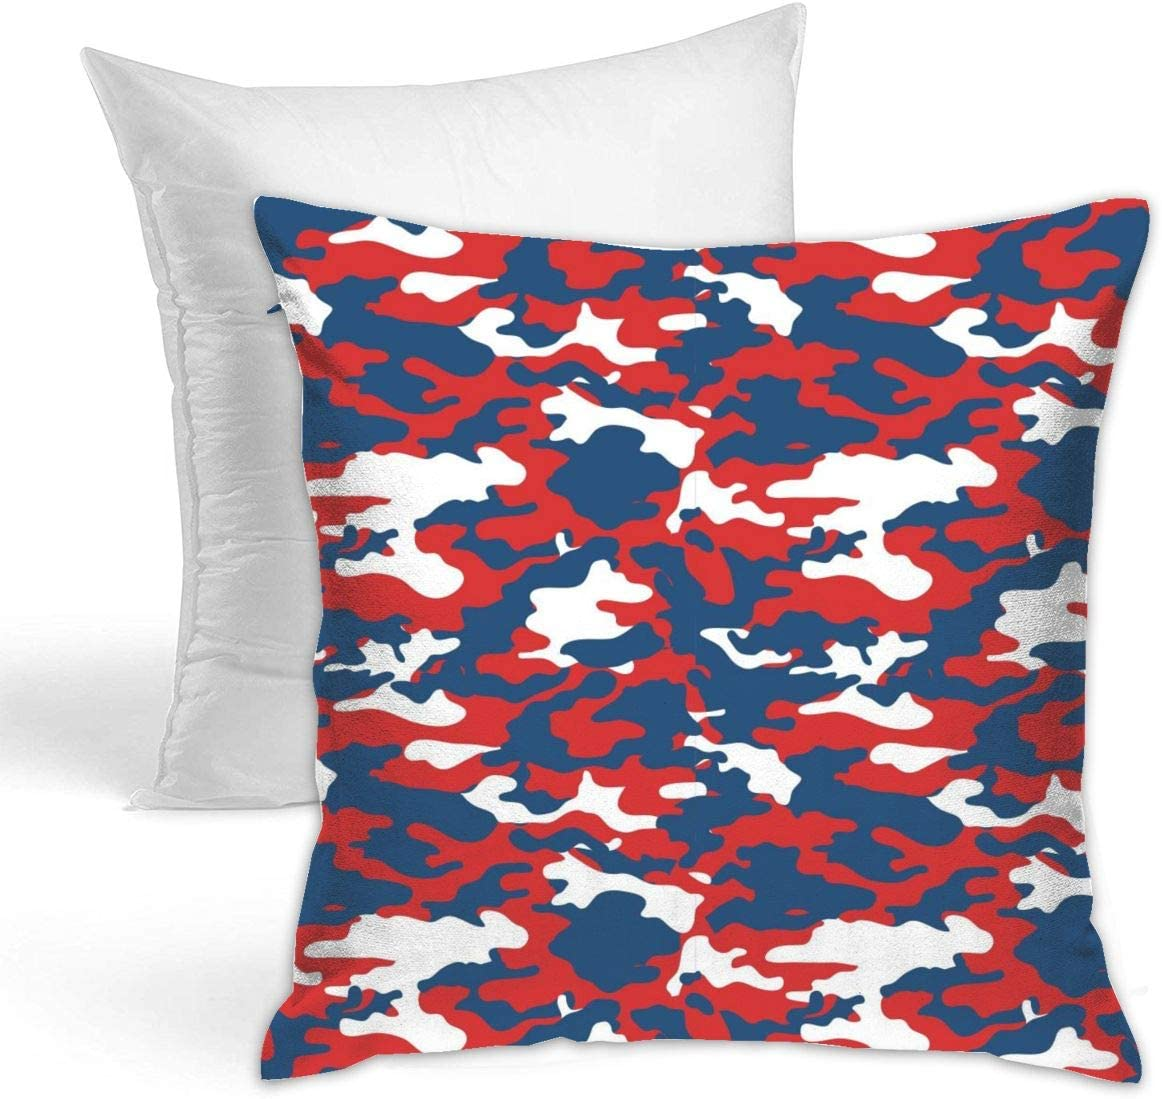 Amazon Com Doobey Red White Camouflage Polyester Decorative Square Throw Hold Pillow Hold For Sofa Bedroom Car Home Decor 18 X18 45x45cm Home Kitchen